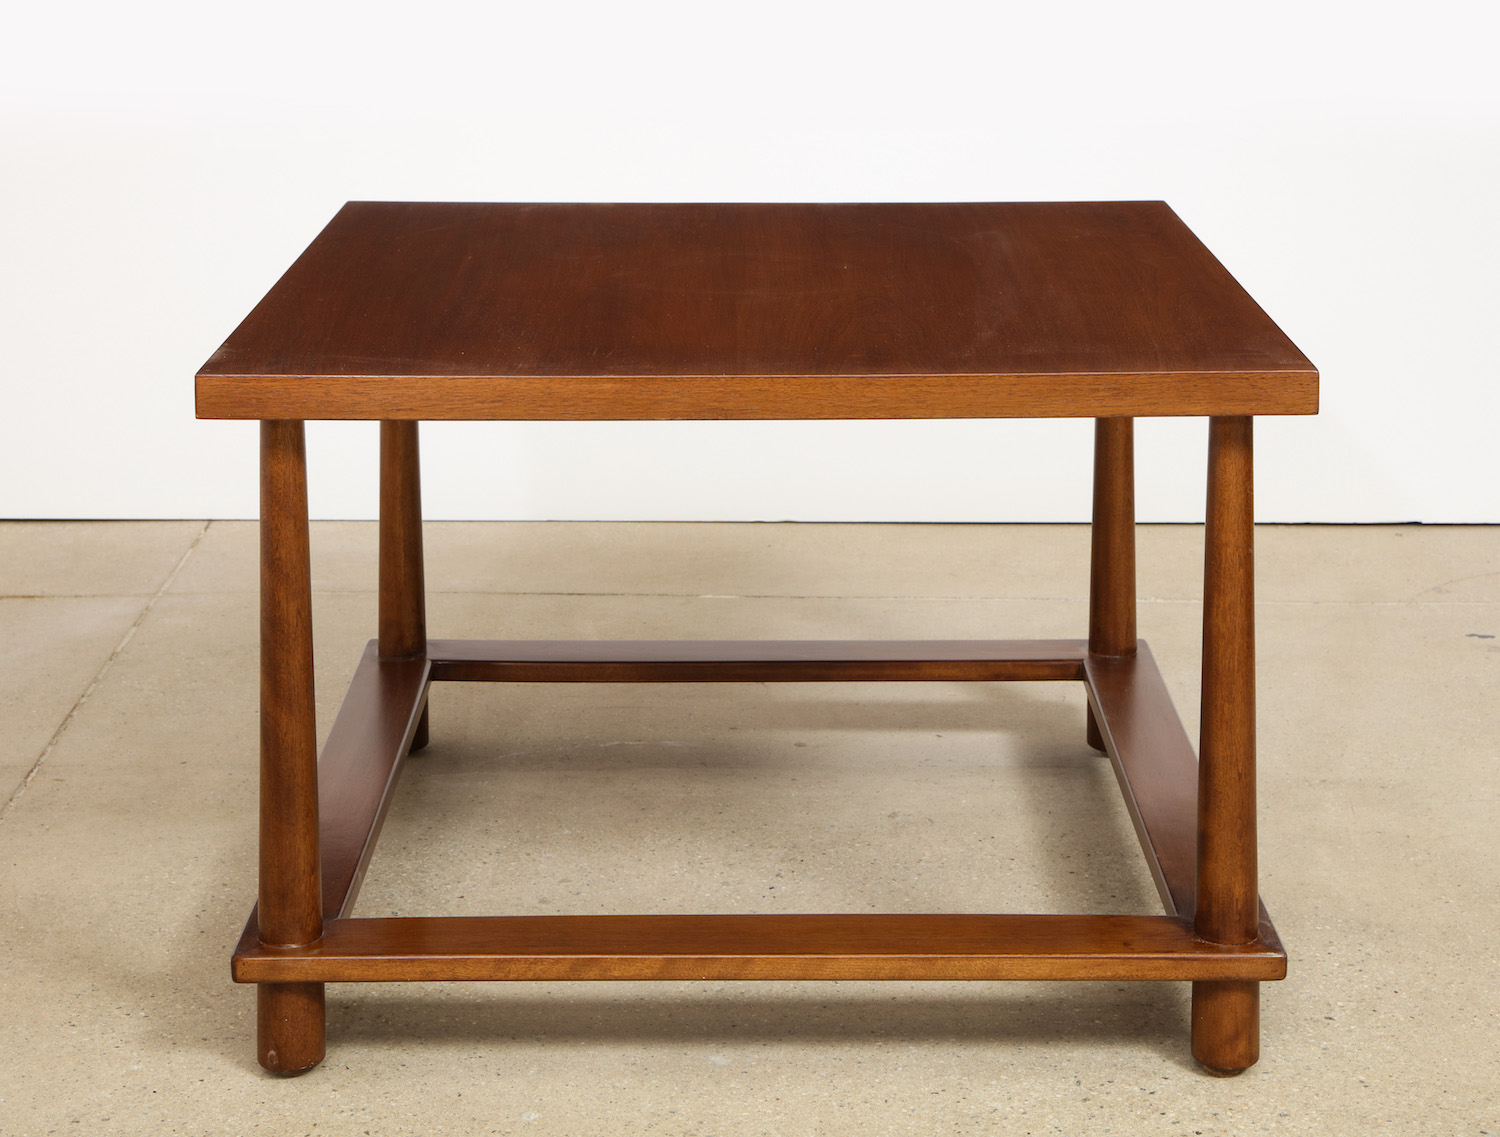 Gibbings big square tables 4.jpg